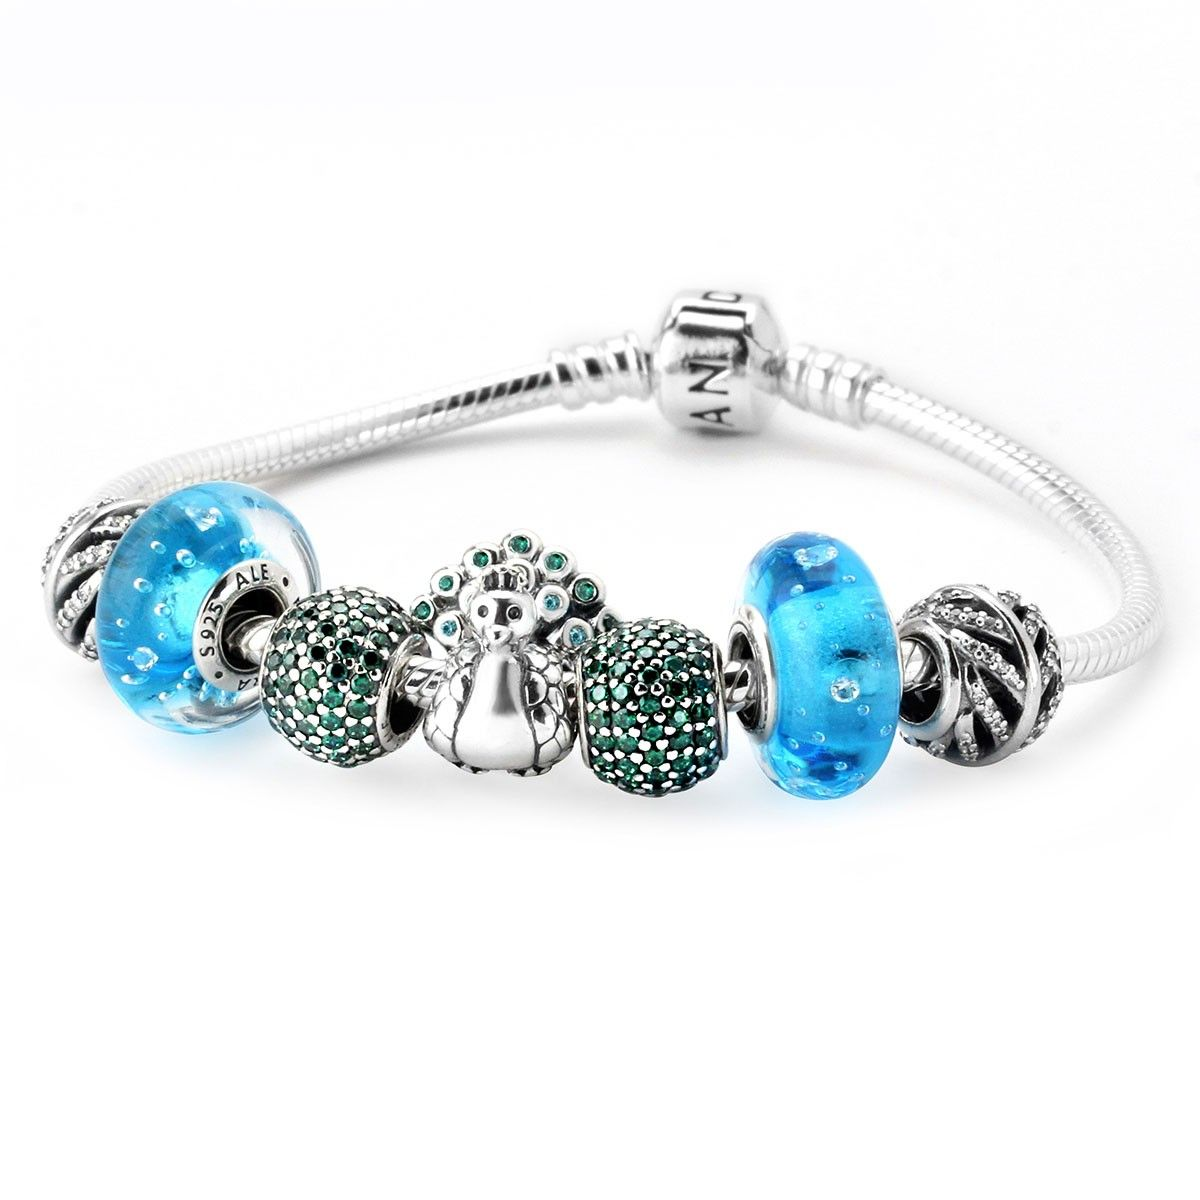 A Significant Discount For Pandora Pretty Peacock Charm Bracelet